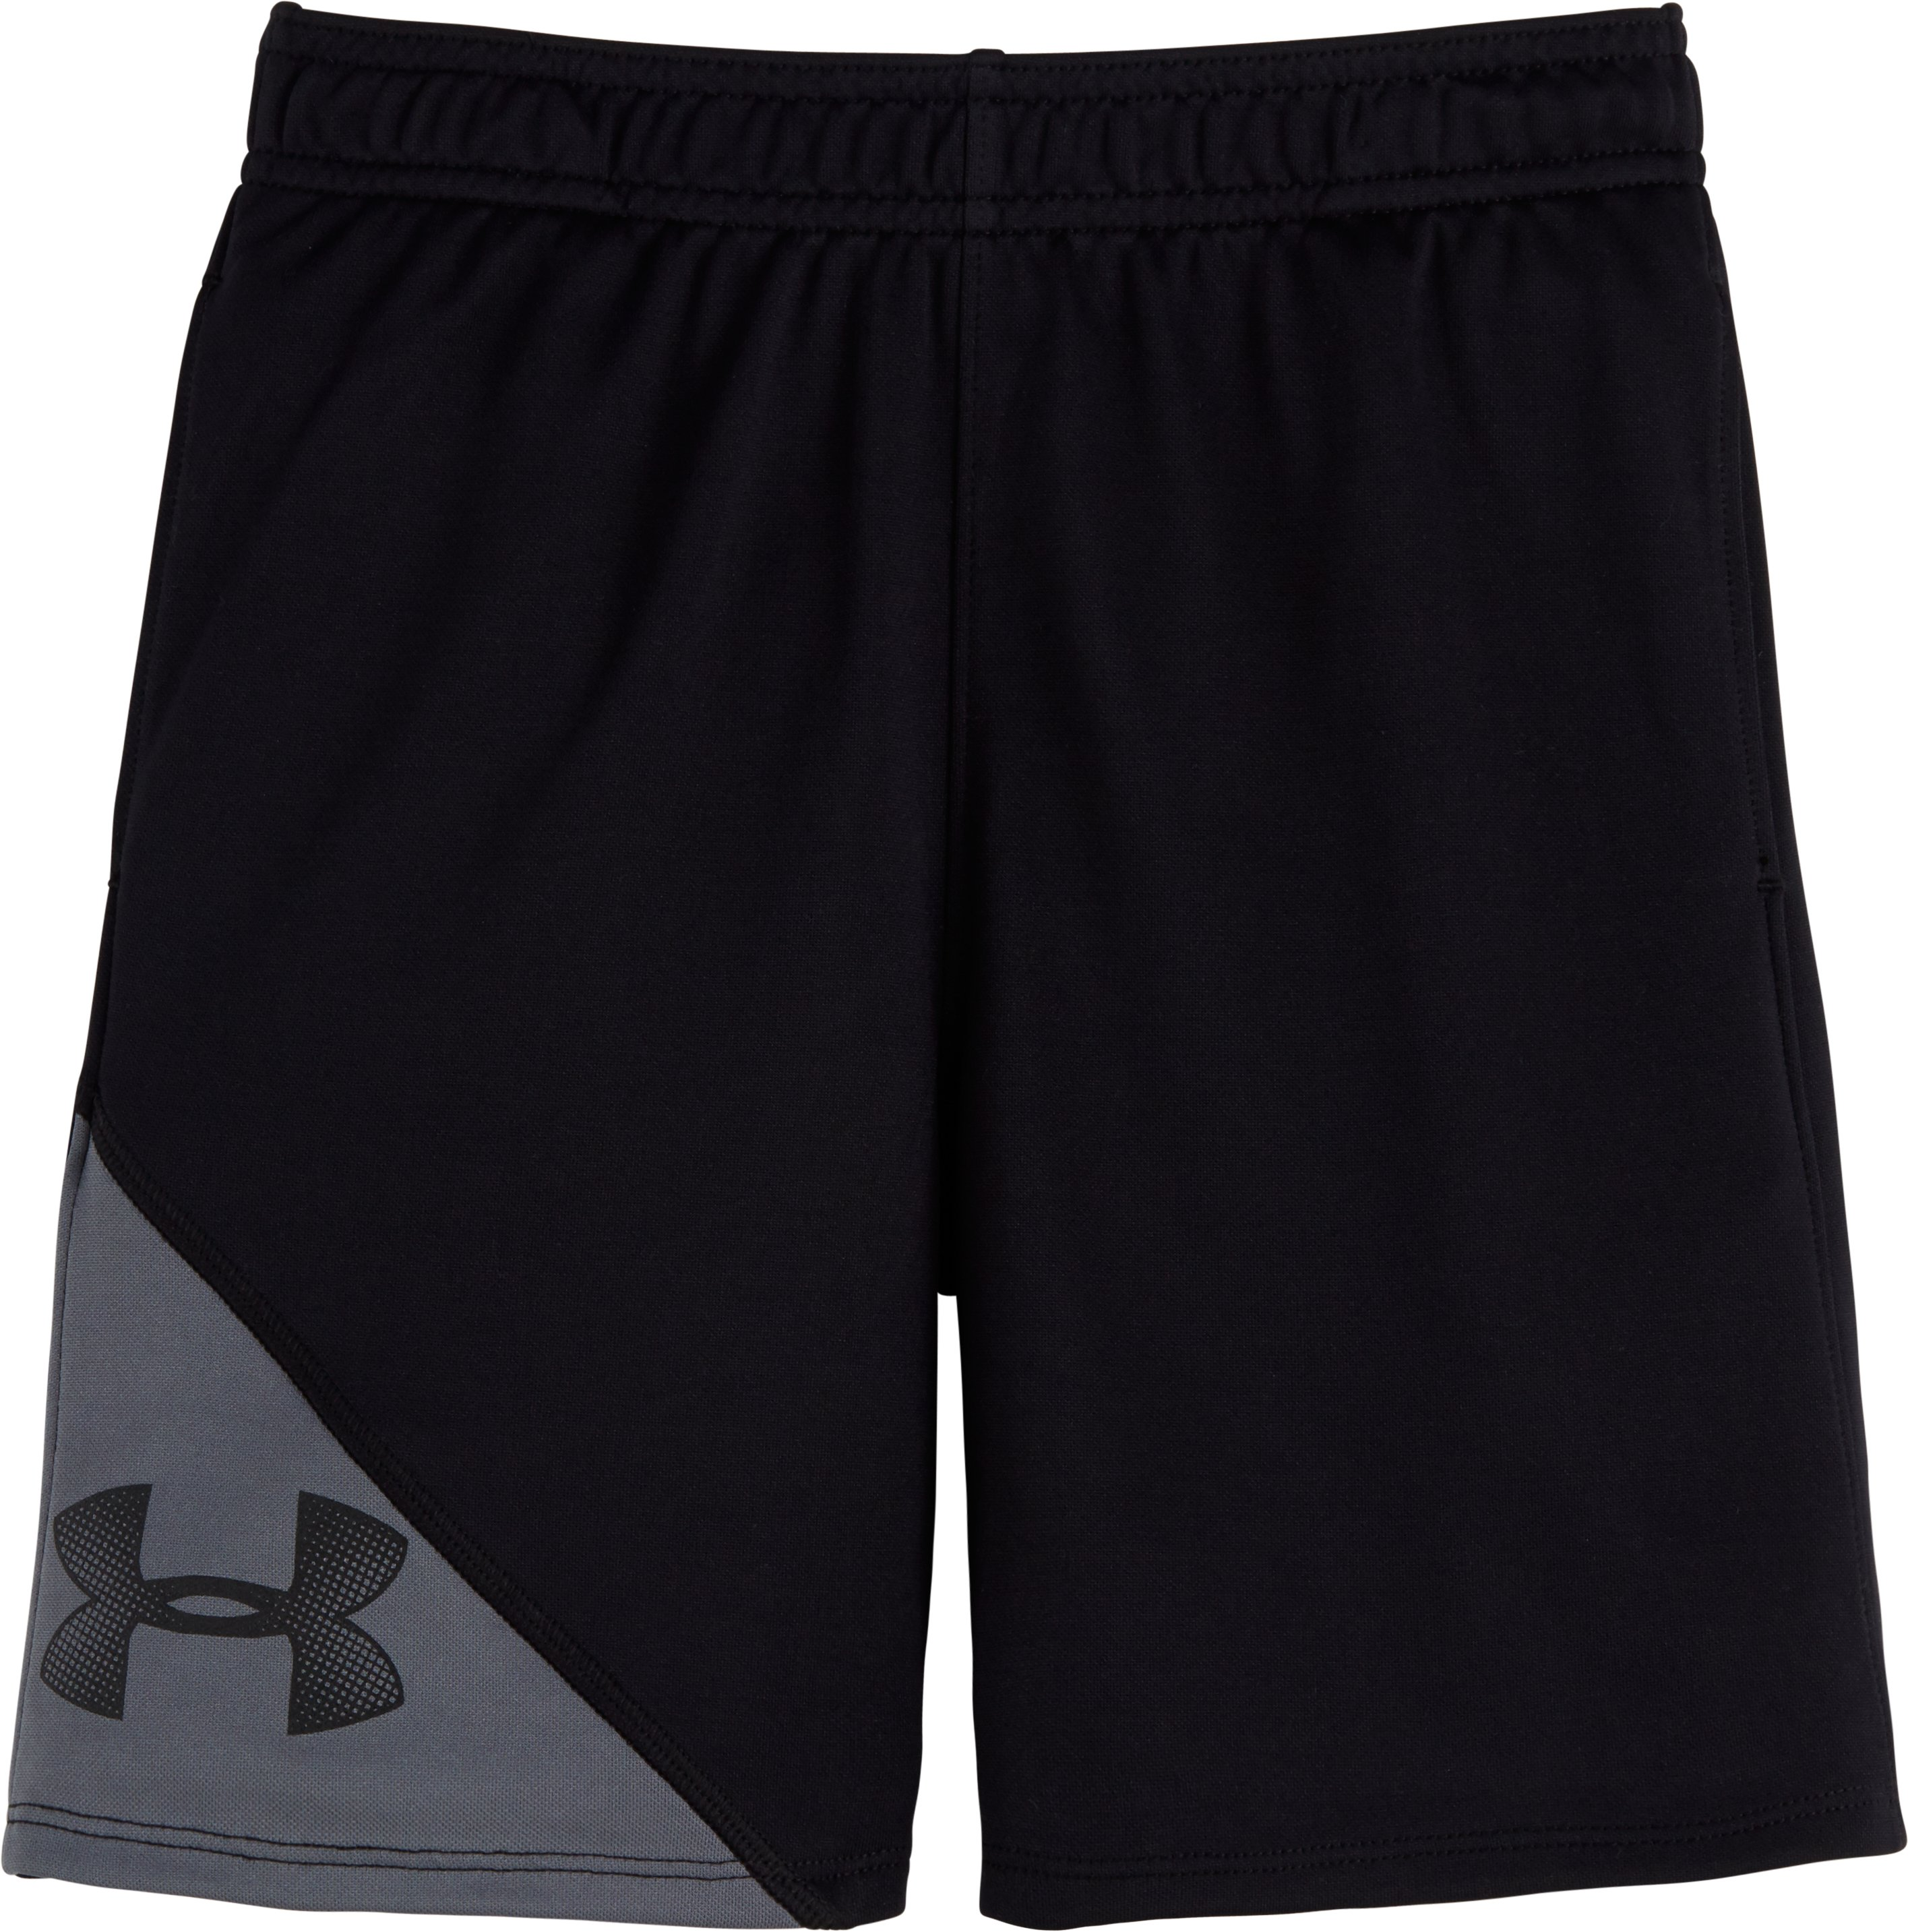 Boys' Toddler UA Prototype Shorts, Black , Laydown